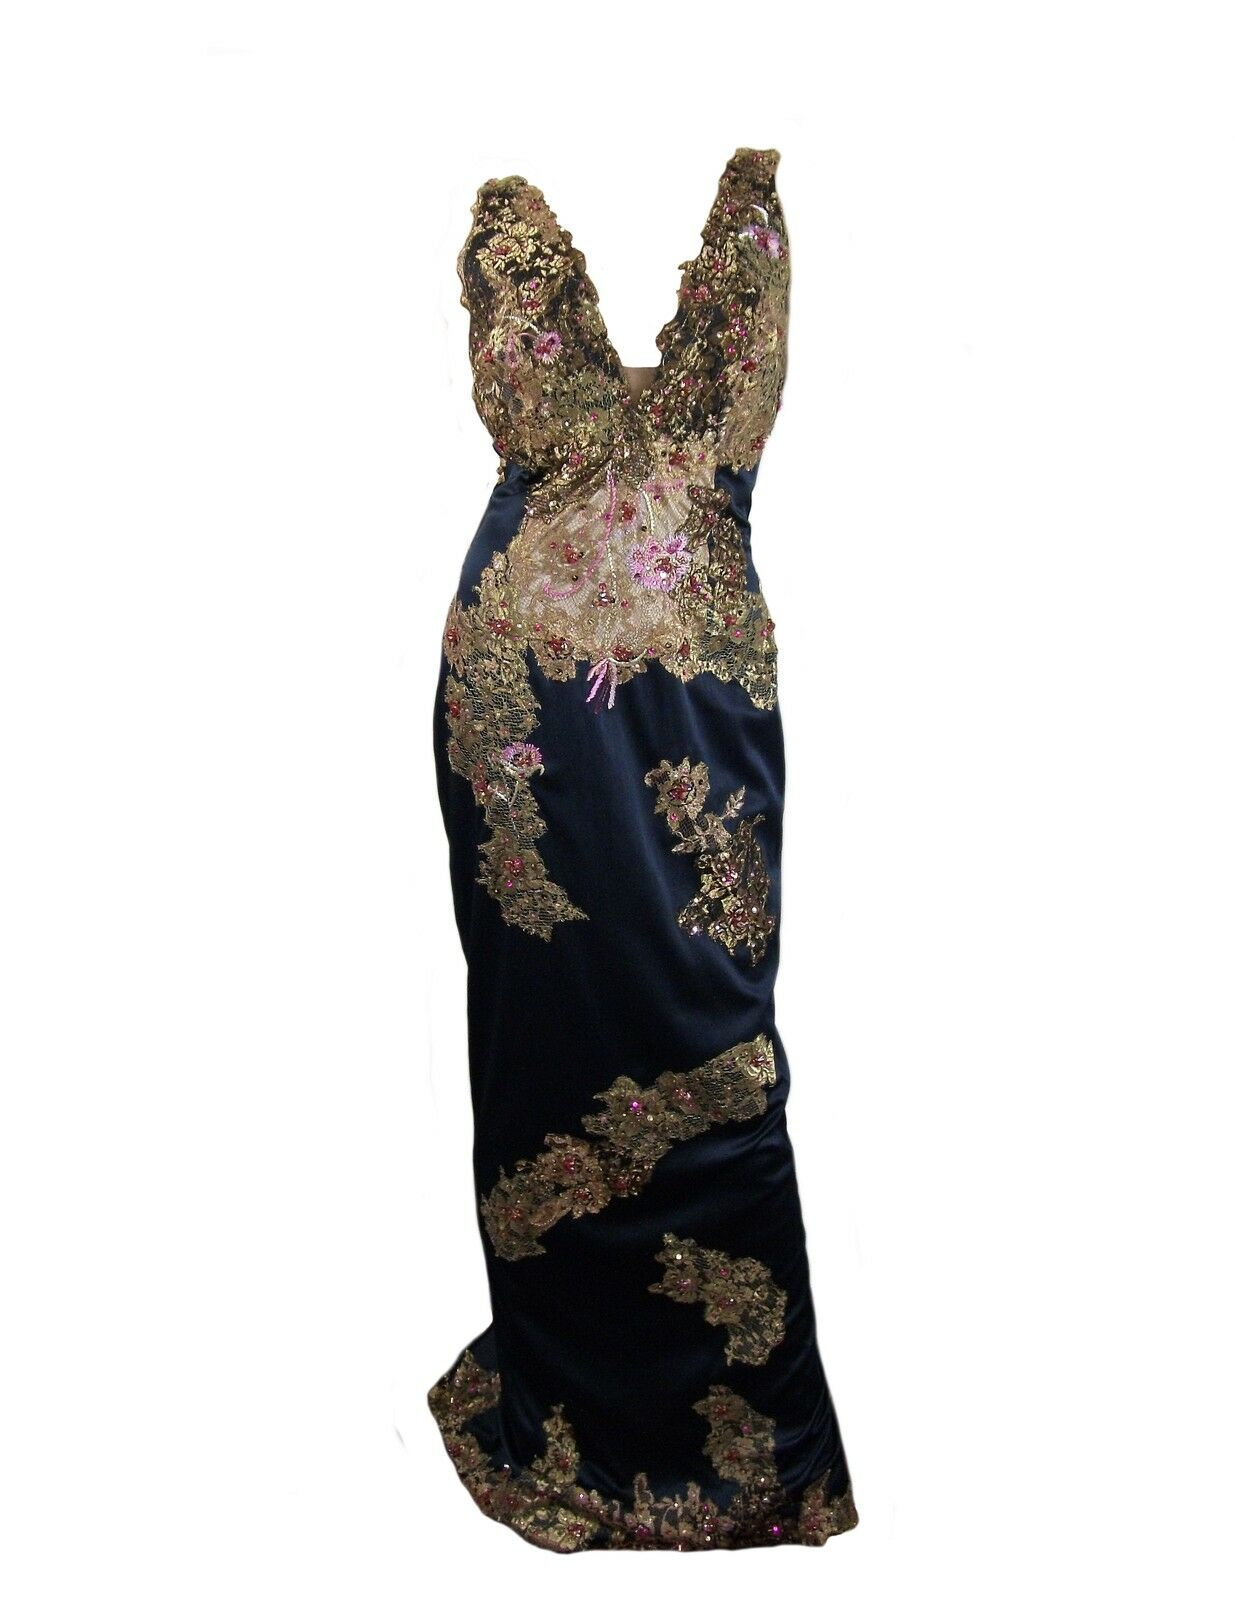 Mandalay gold Embellished Satin Gown Size 6  1070